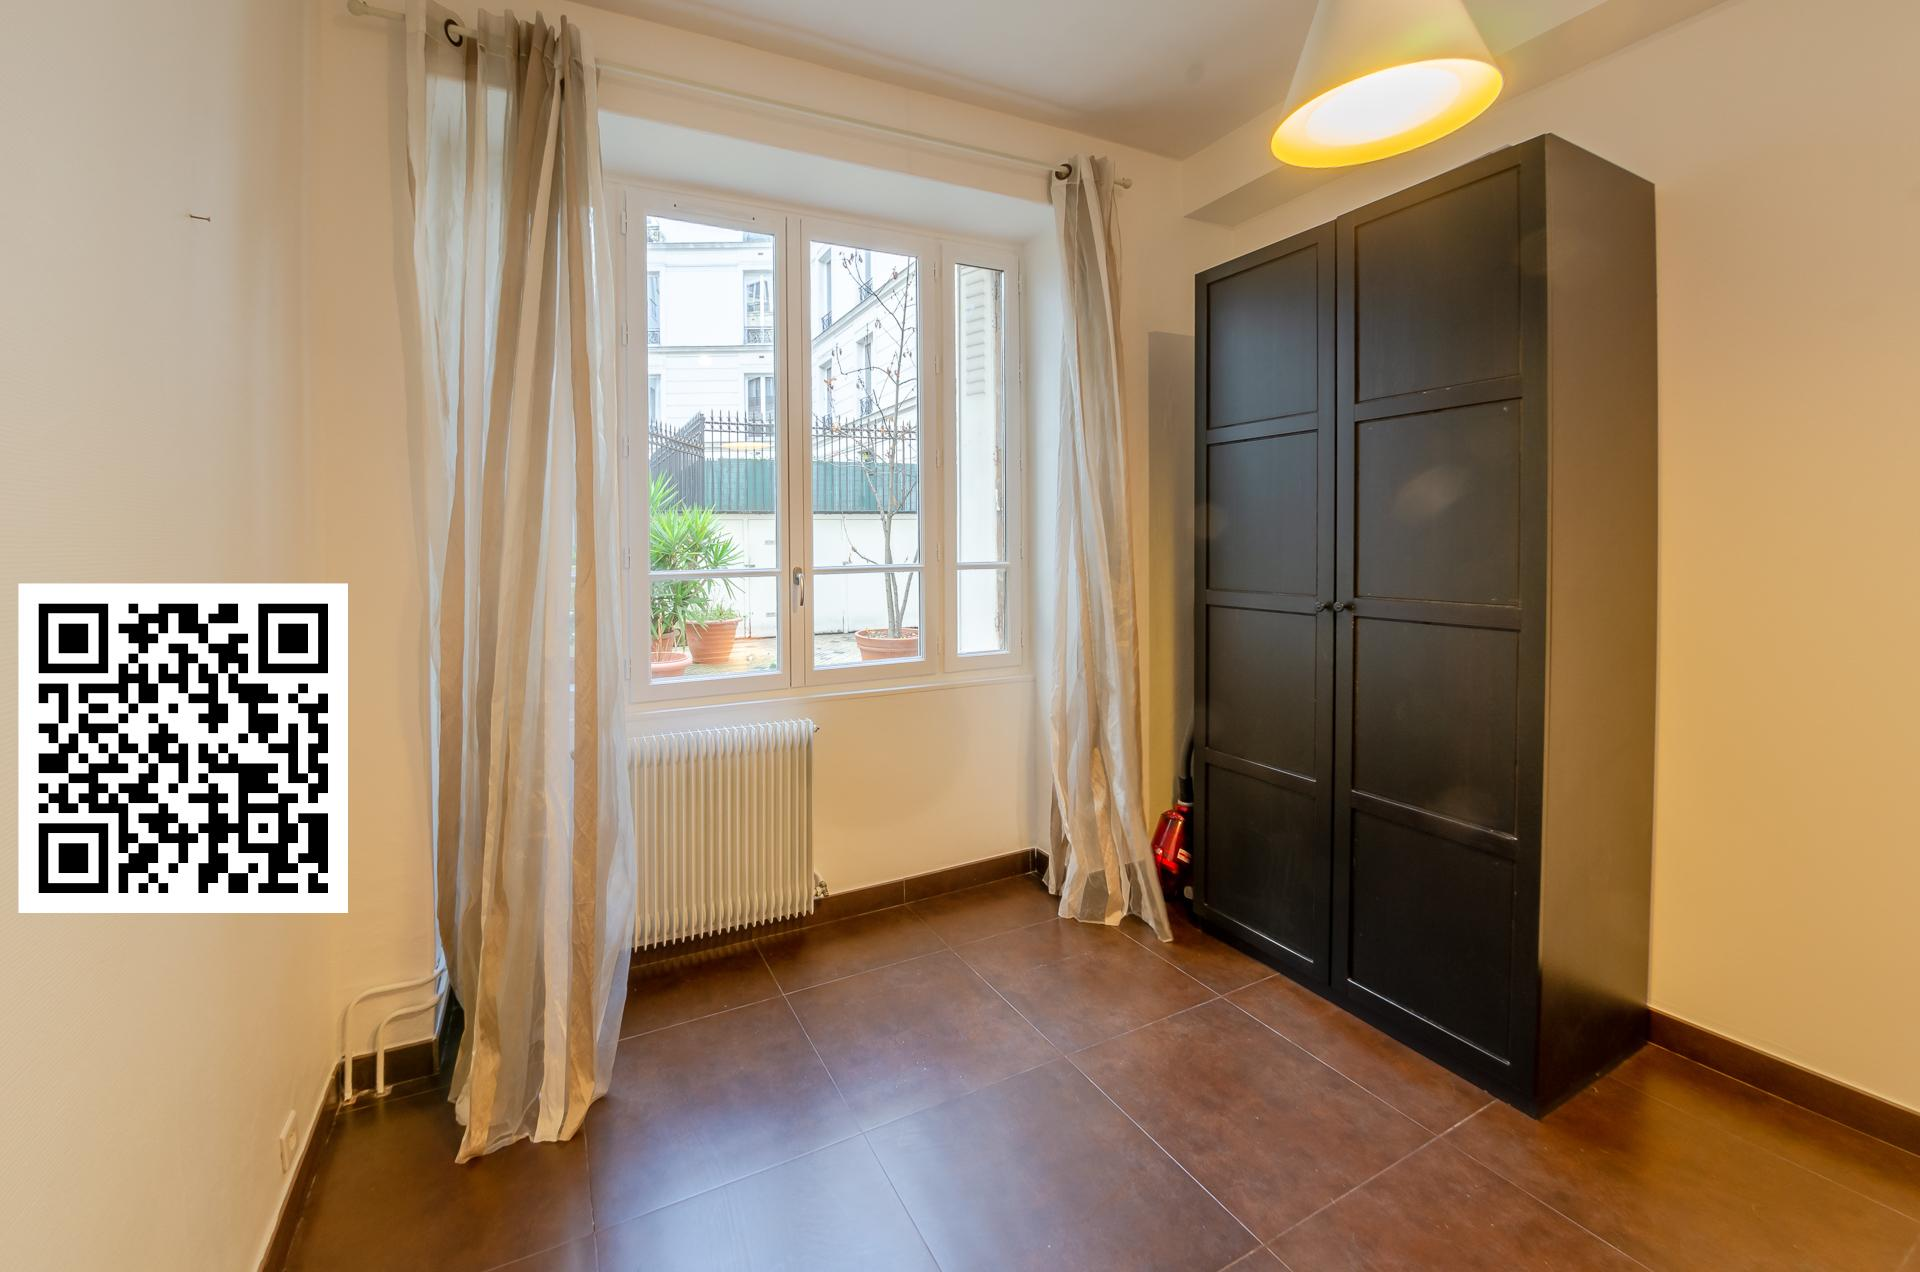 PARIS 15EME, FALGUIERE MONTPARNASSE, APPARTEMENT 3 PIECES DE 47 m²